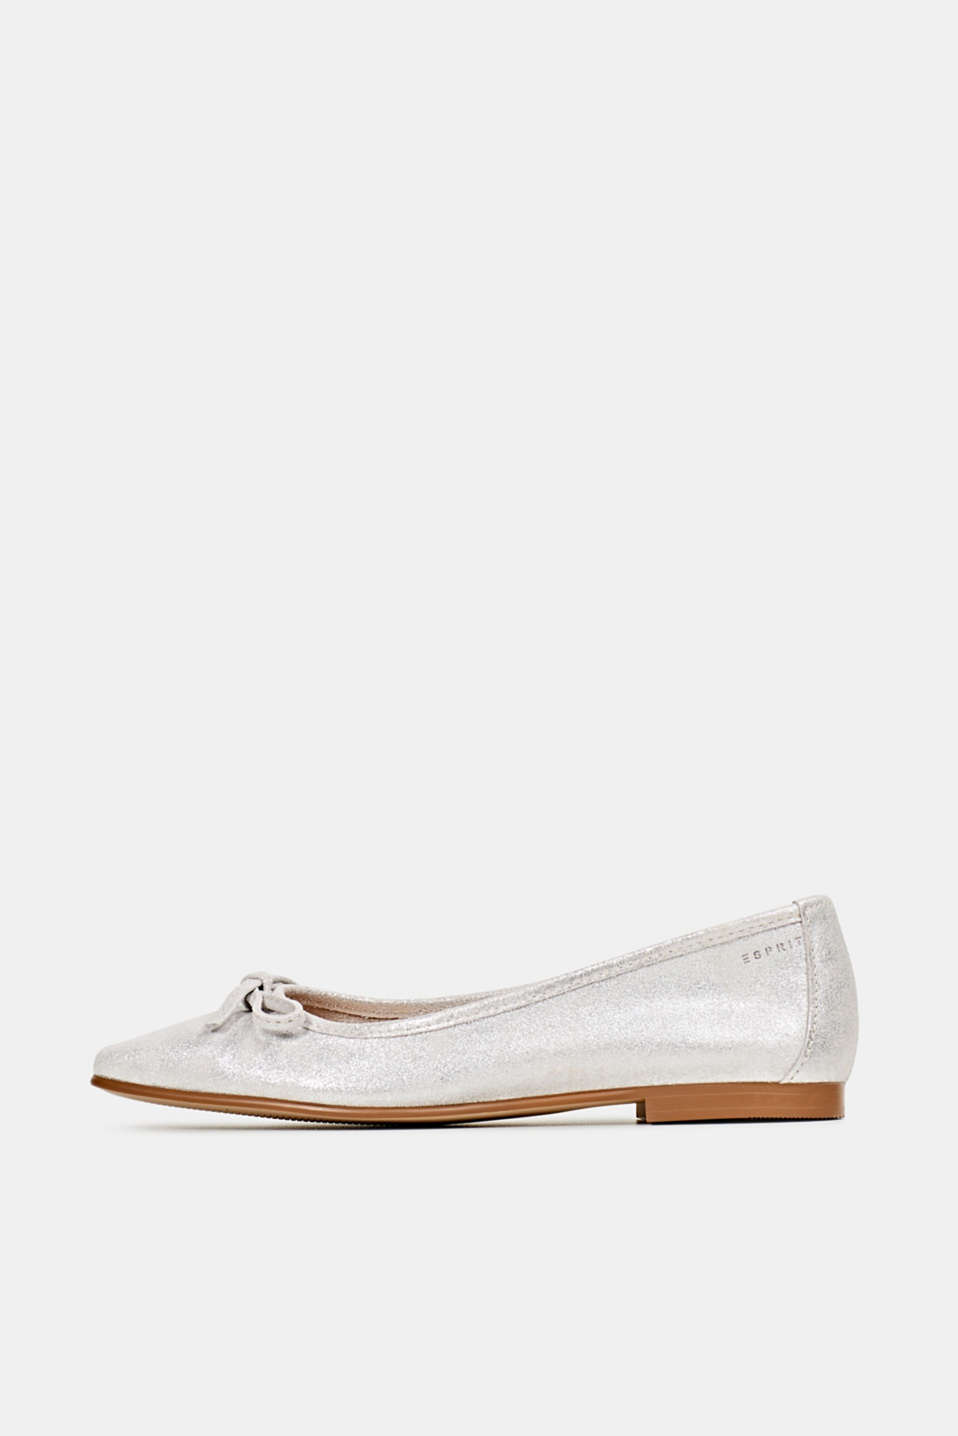 Esprit - Leather ballerinas with bows